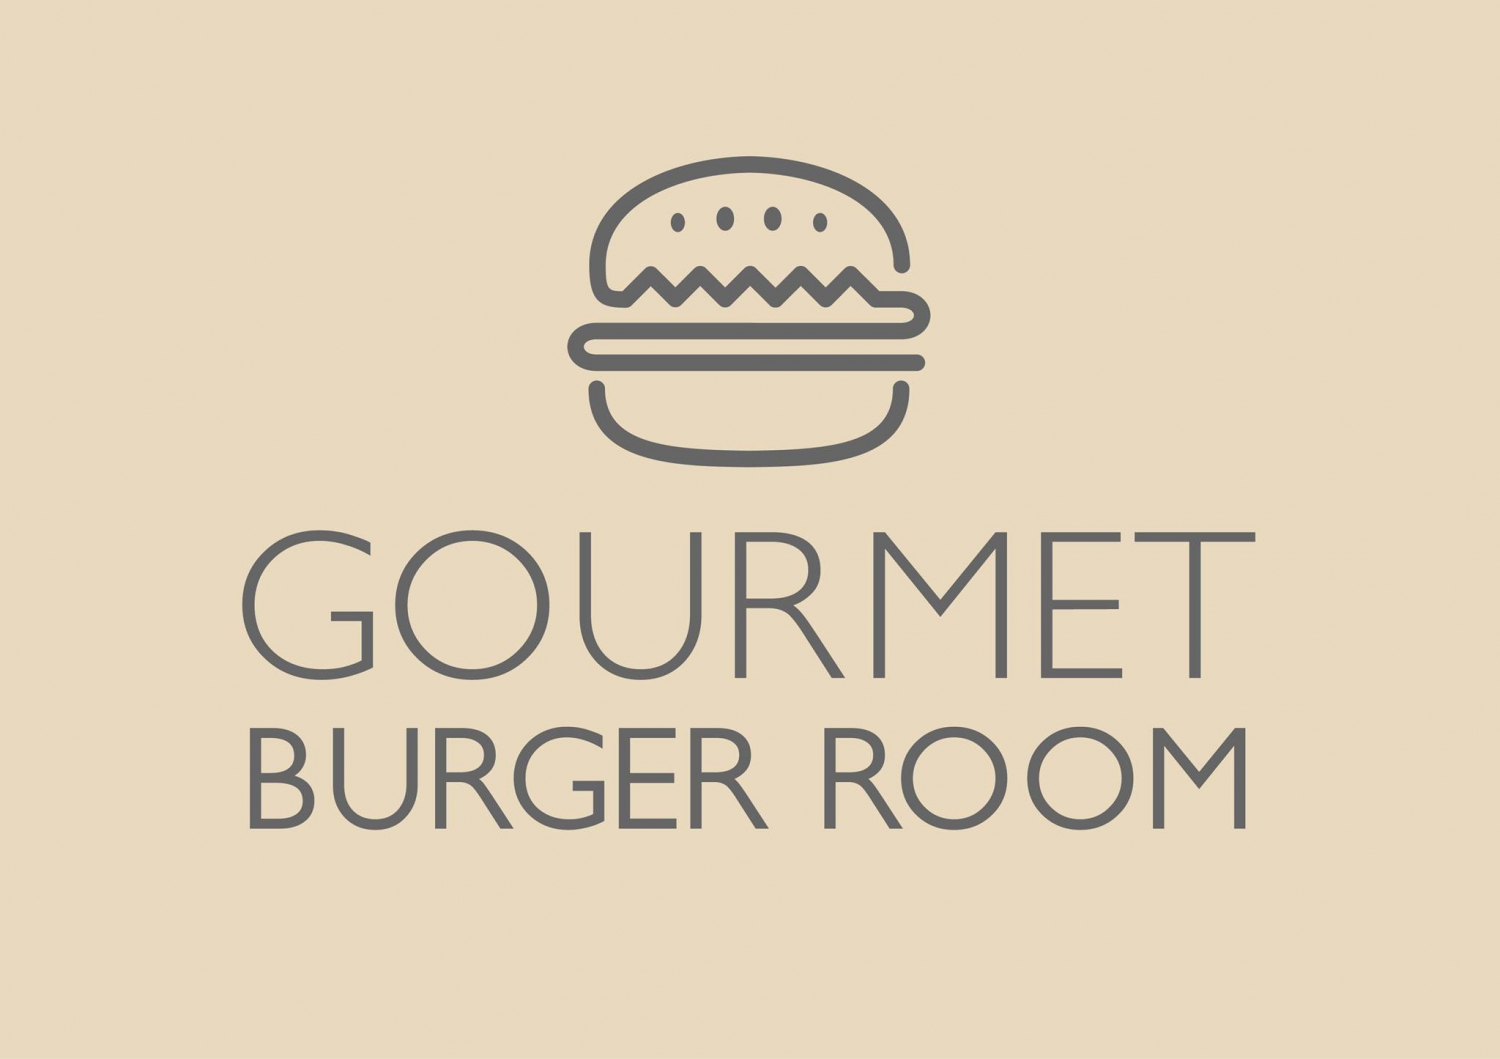 Best Burgers in Marbella